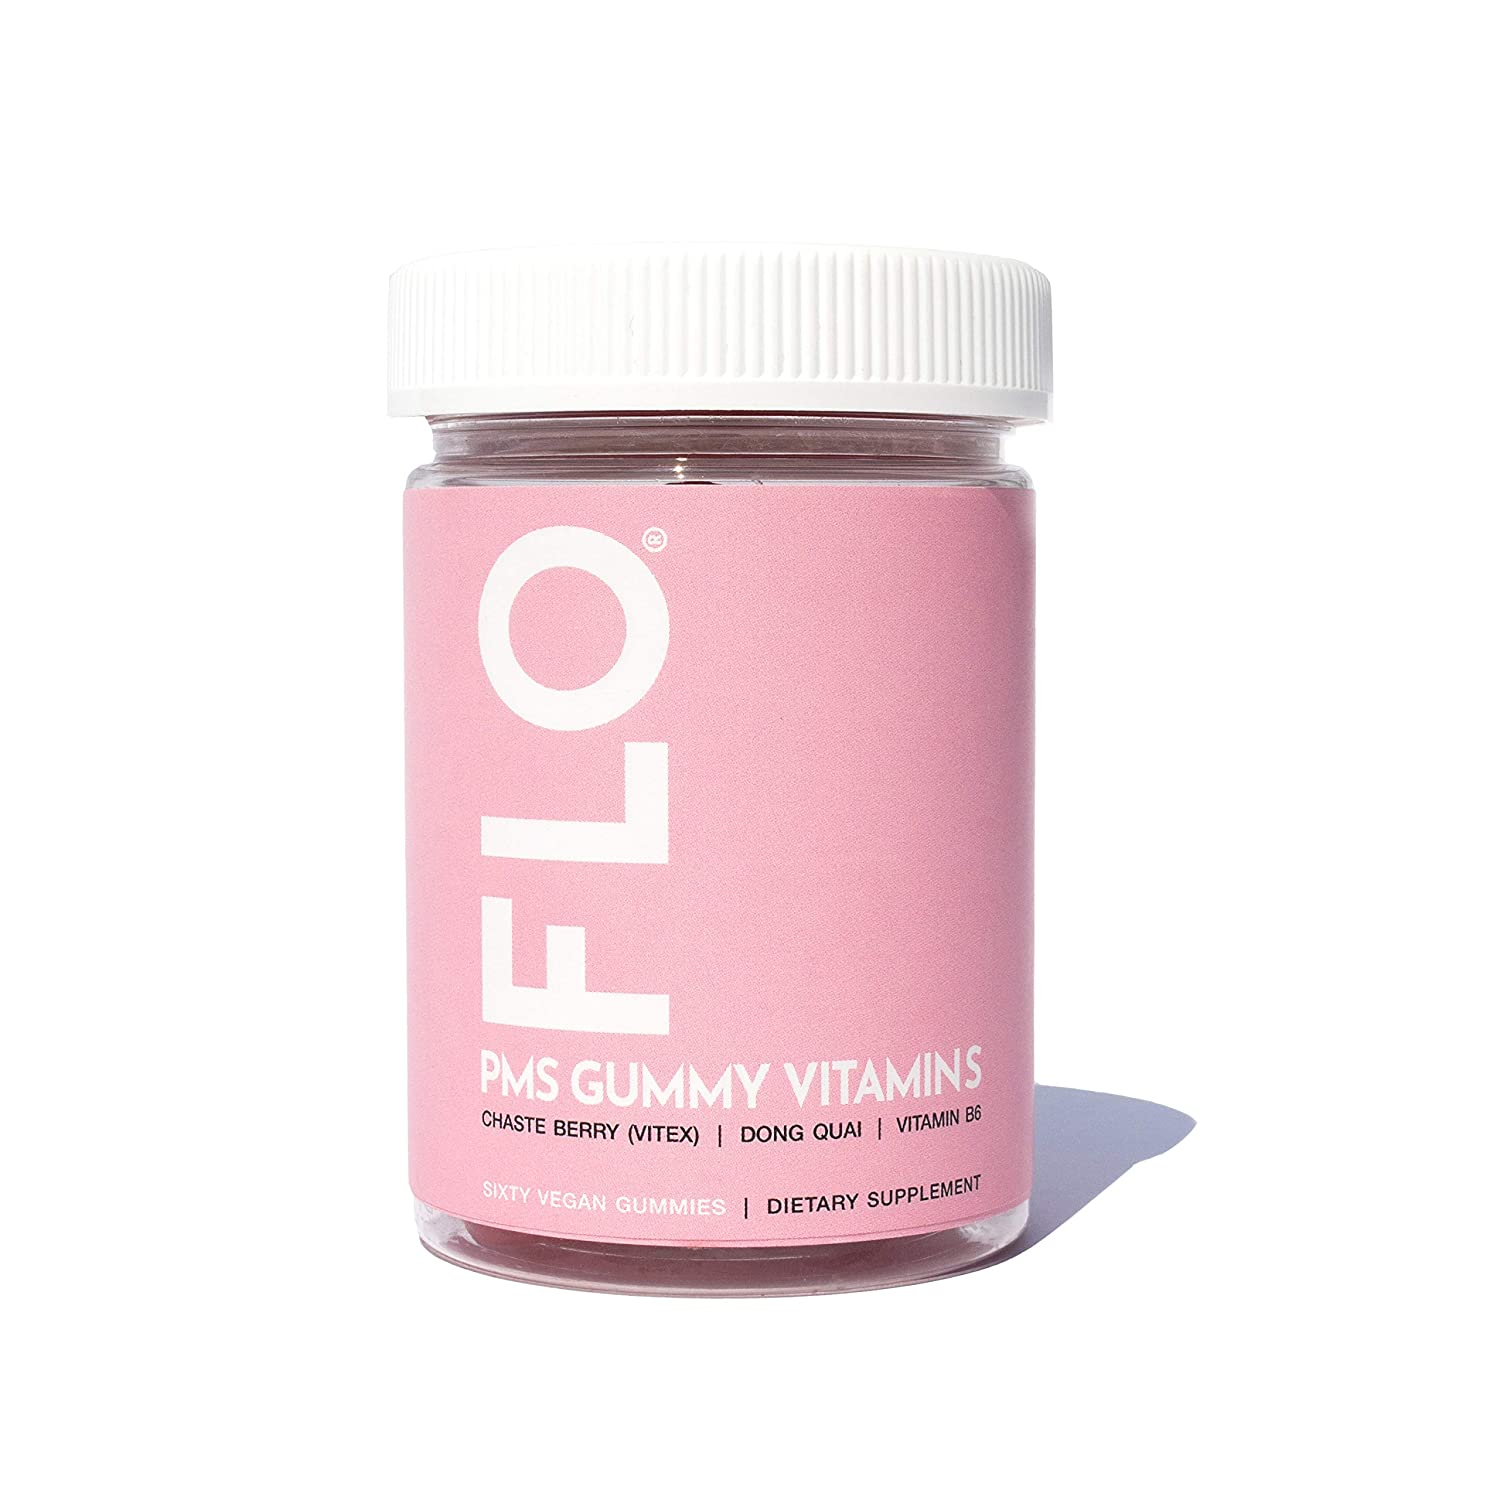 Amazon.com: FLO - PMS Gummy Vitamins With Chaste Berry, Vitamin B6 & Dong Quai | All Natural Chewable Dietary Supplement | Alleviate Cramps, Support Better ...